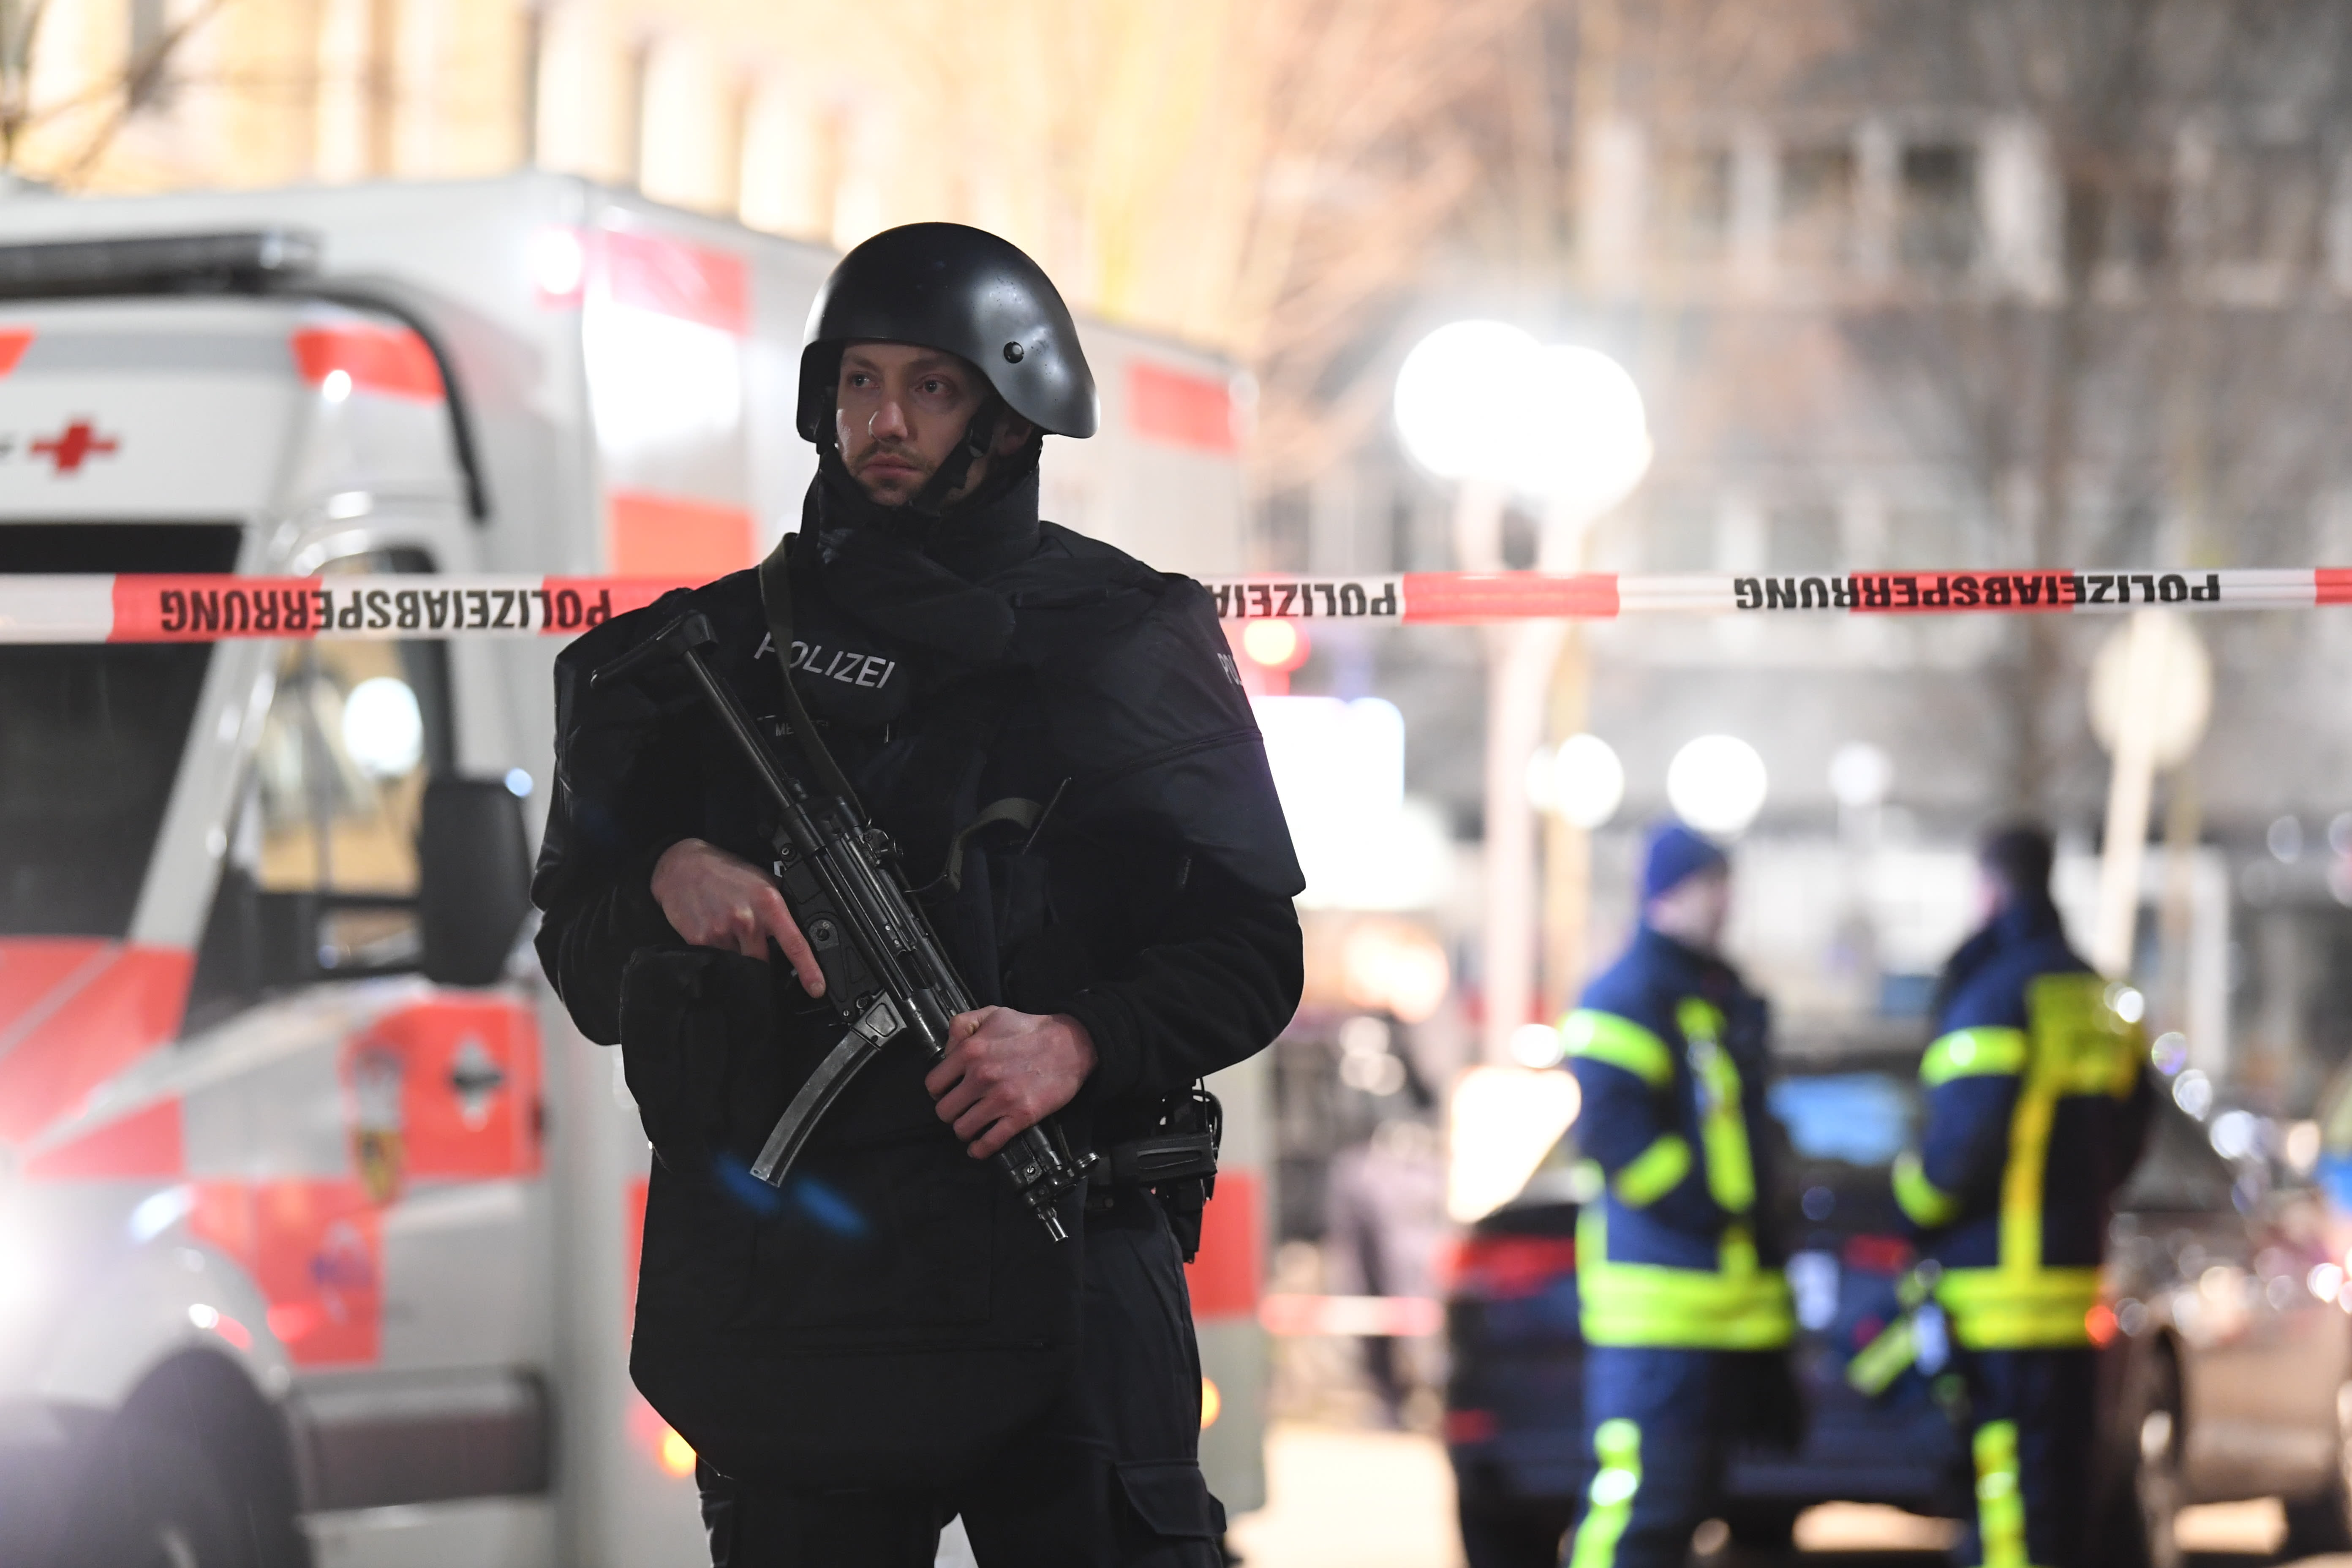 A police officer stands guard near the scene in front of a restaurant after a shooting in central Hanau, Germany Thursday, Feb. 20, 2020. Eight people were killed in shootings in the German city of Hanau on Wednesday evening, authorities said. (Boris Roessler/dpa via AP)